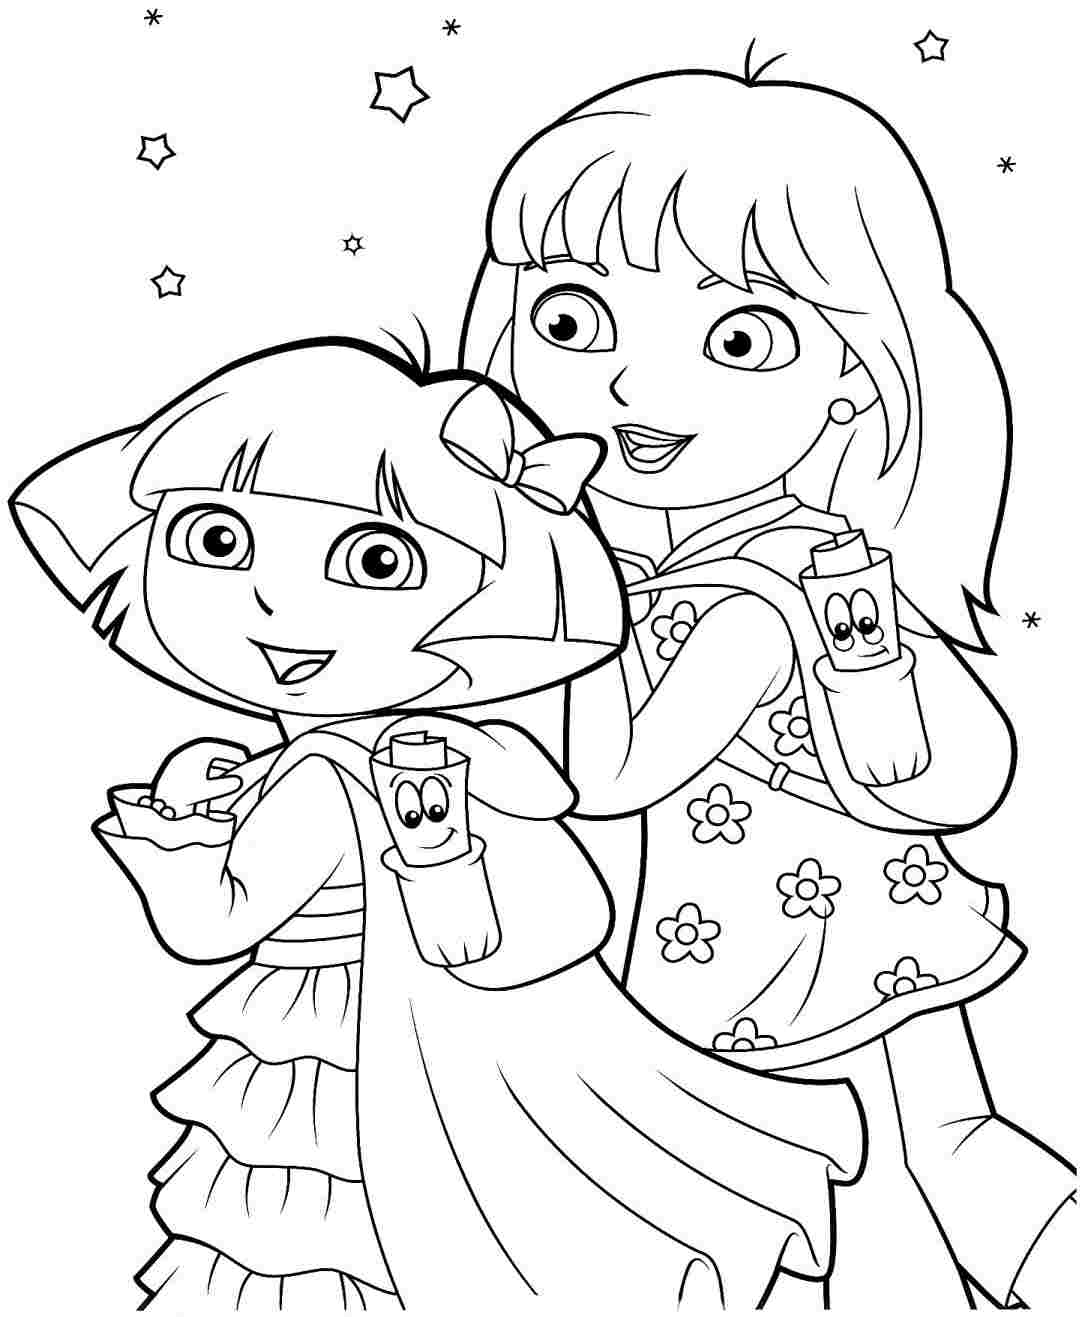 Mobile shimmer and shine coloring games coloring pages ausmalbilder -  Holiday Coloring Pages Nick Jr Halloween Coloring Pages Imprime Imu00e1genes De Dora Y Sus Amigos